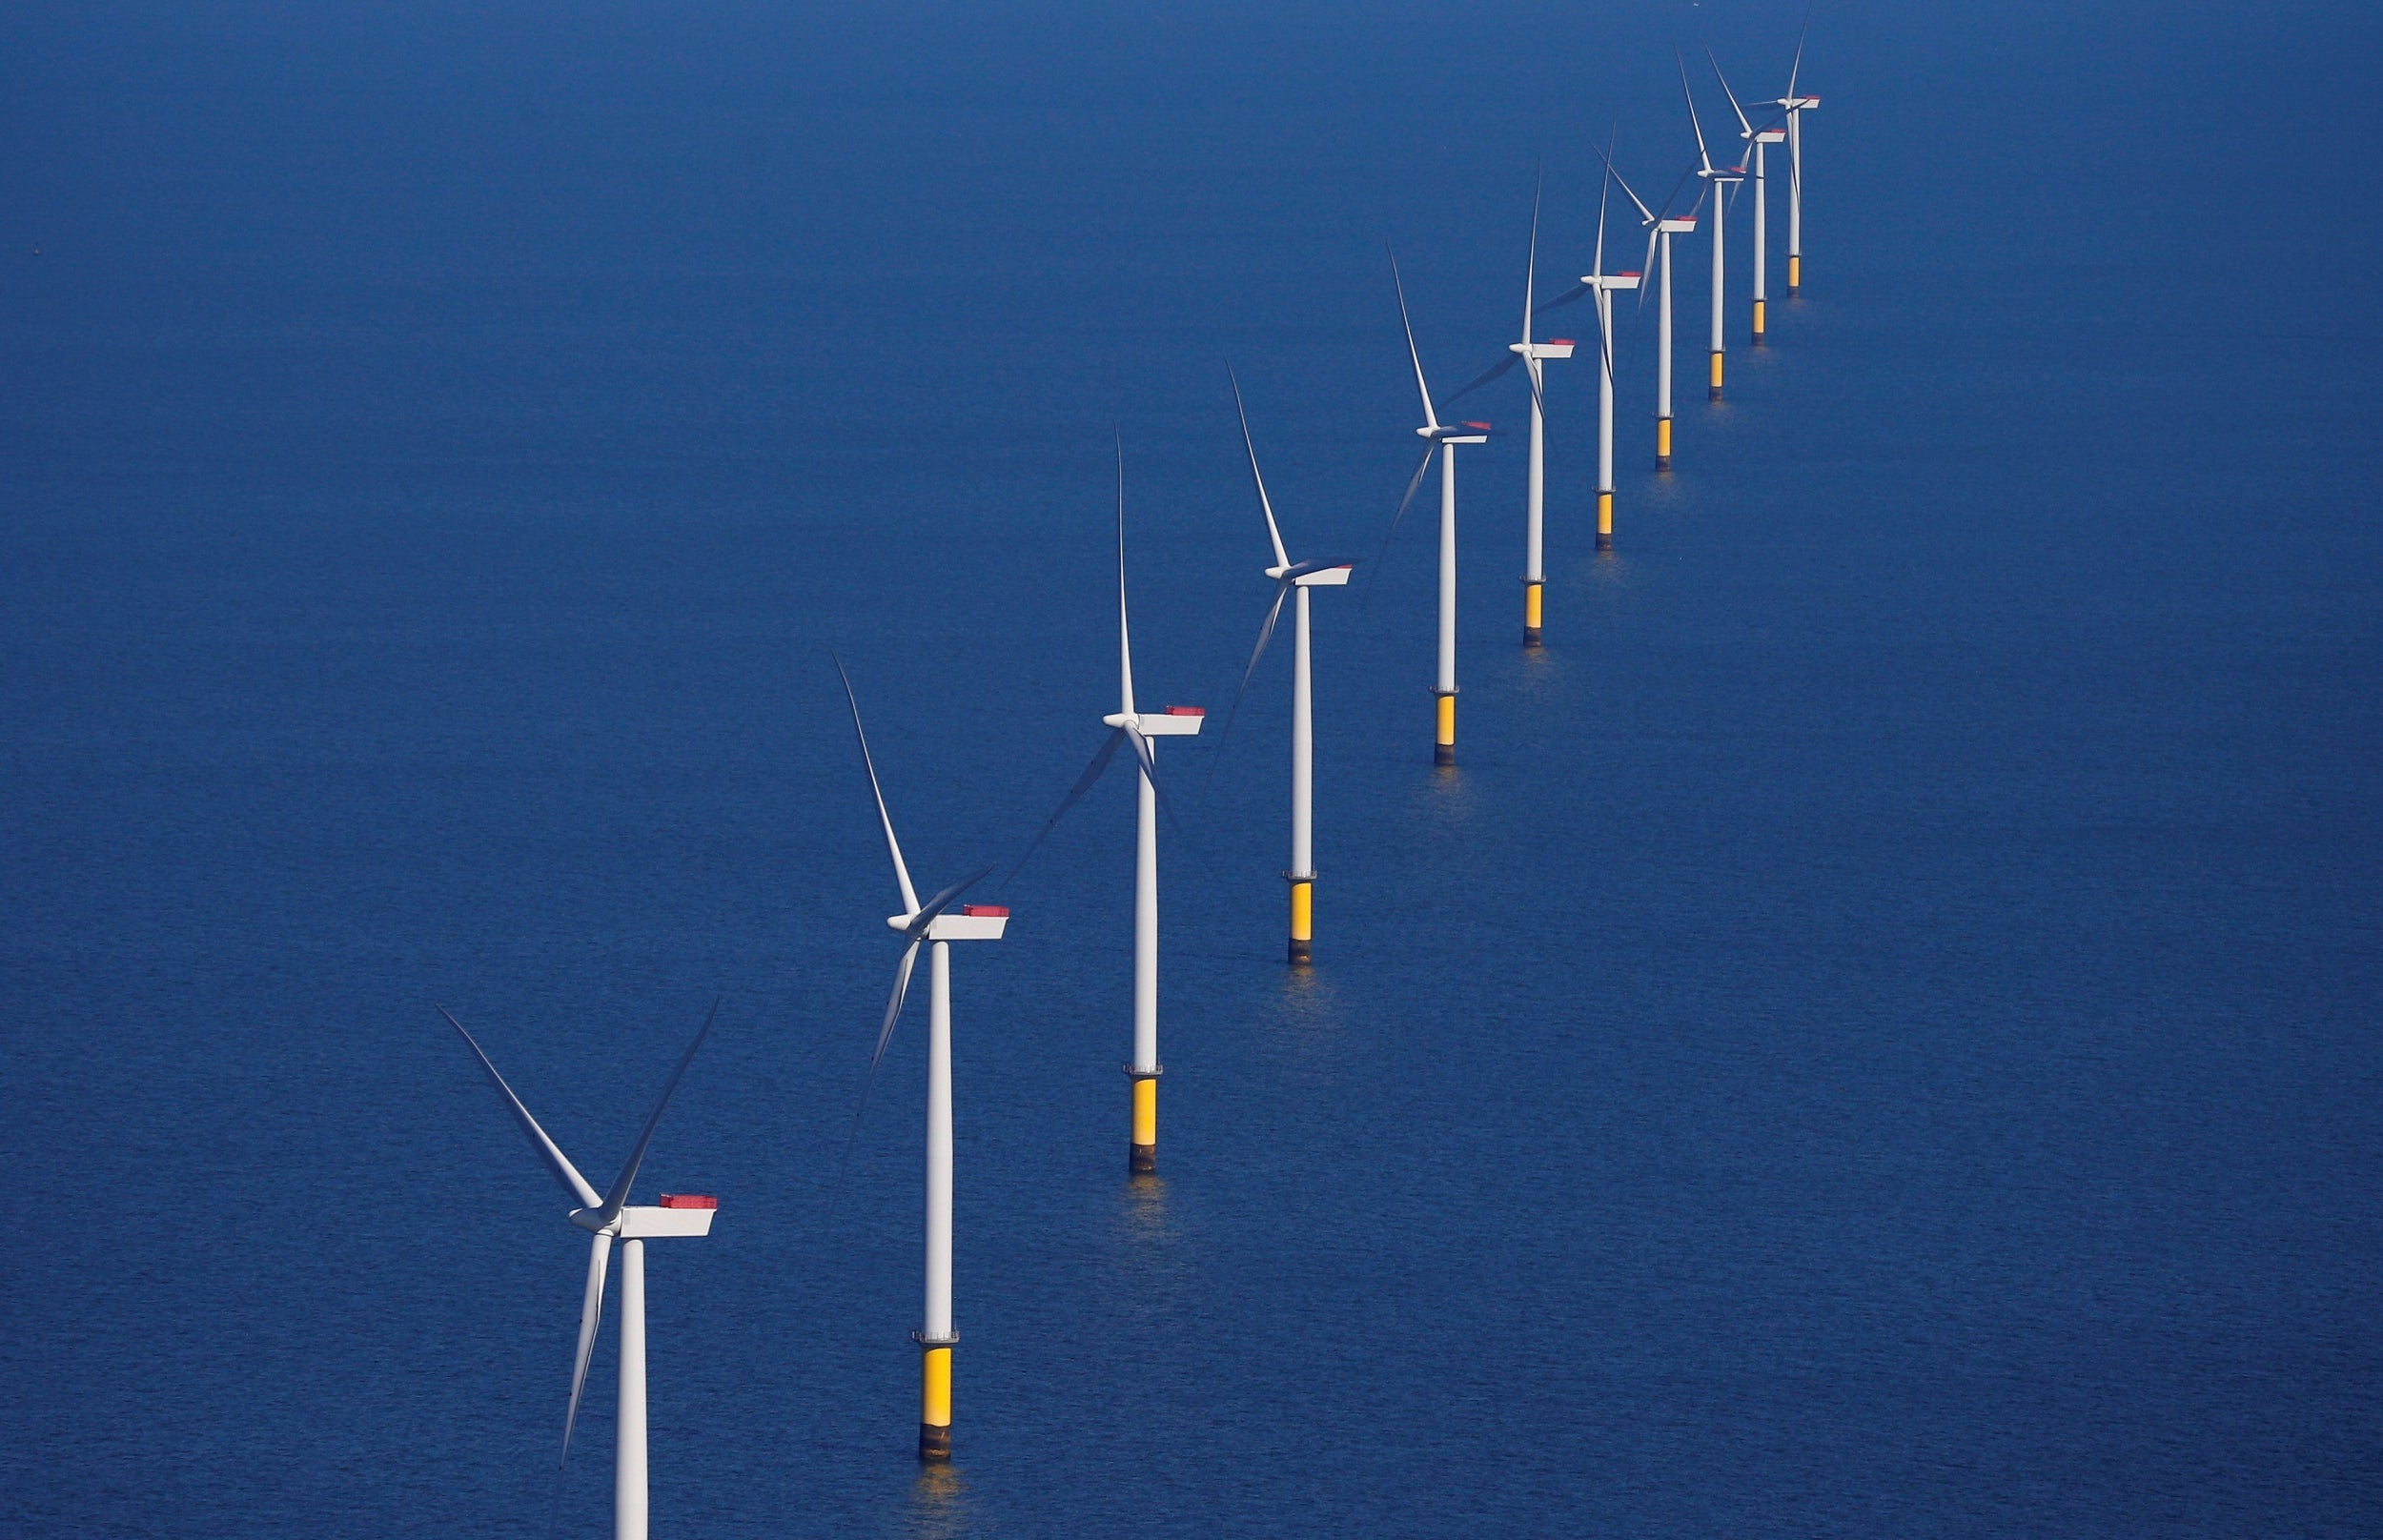 The energy market is vital to the world's green economic recovery